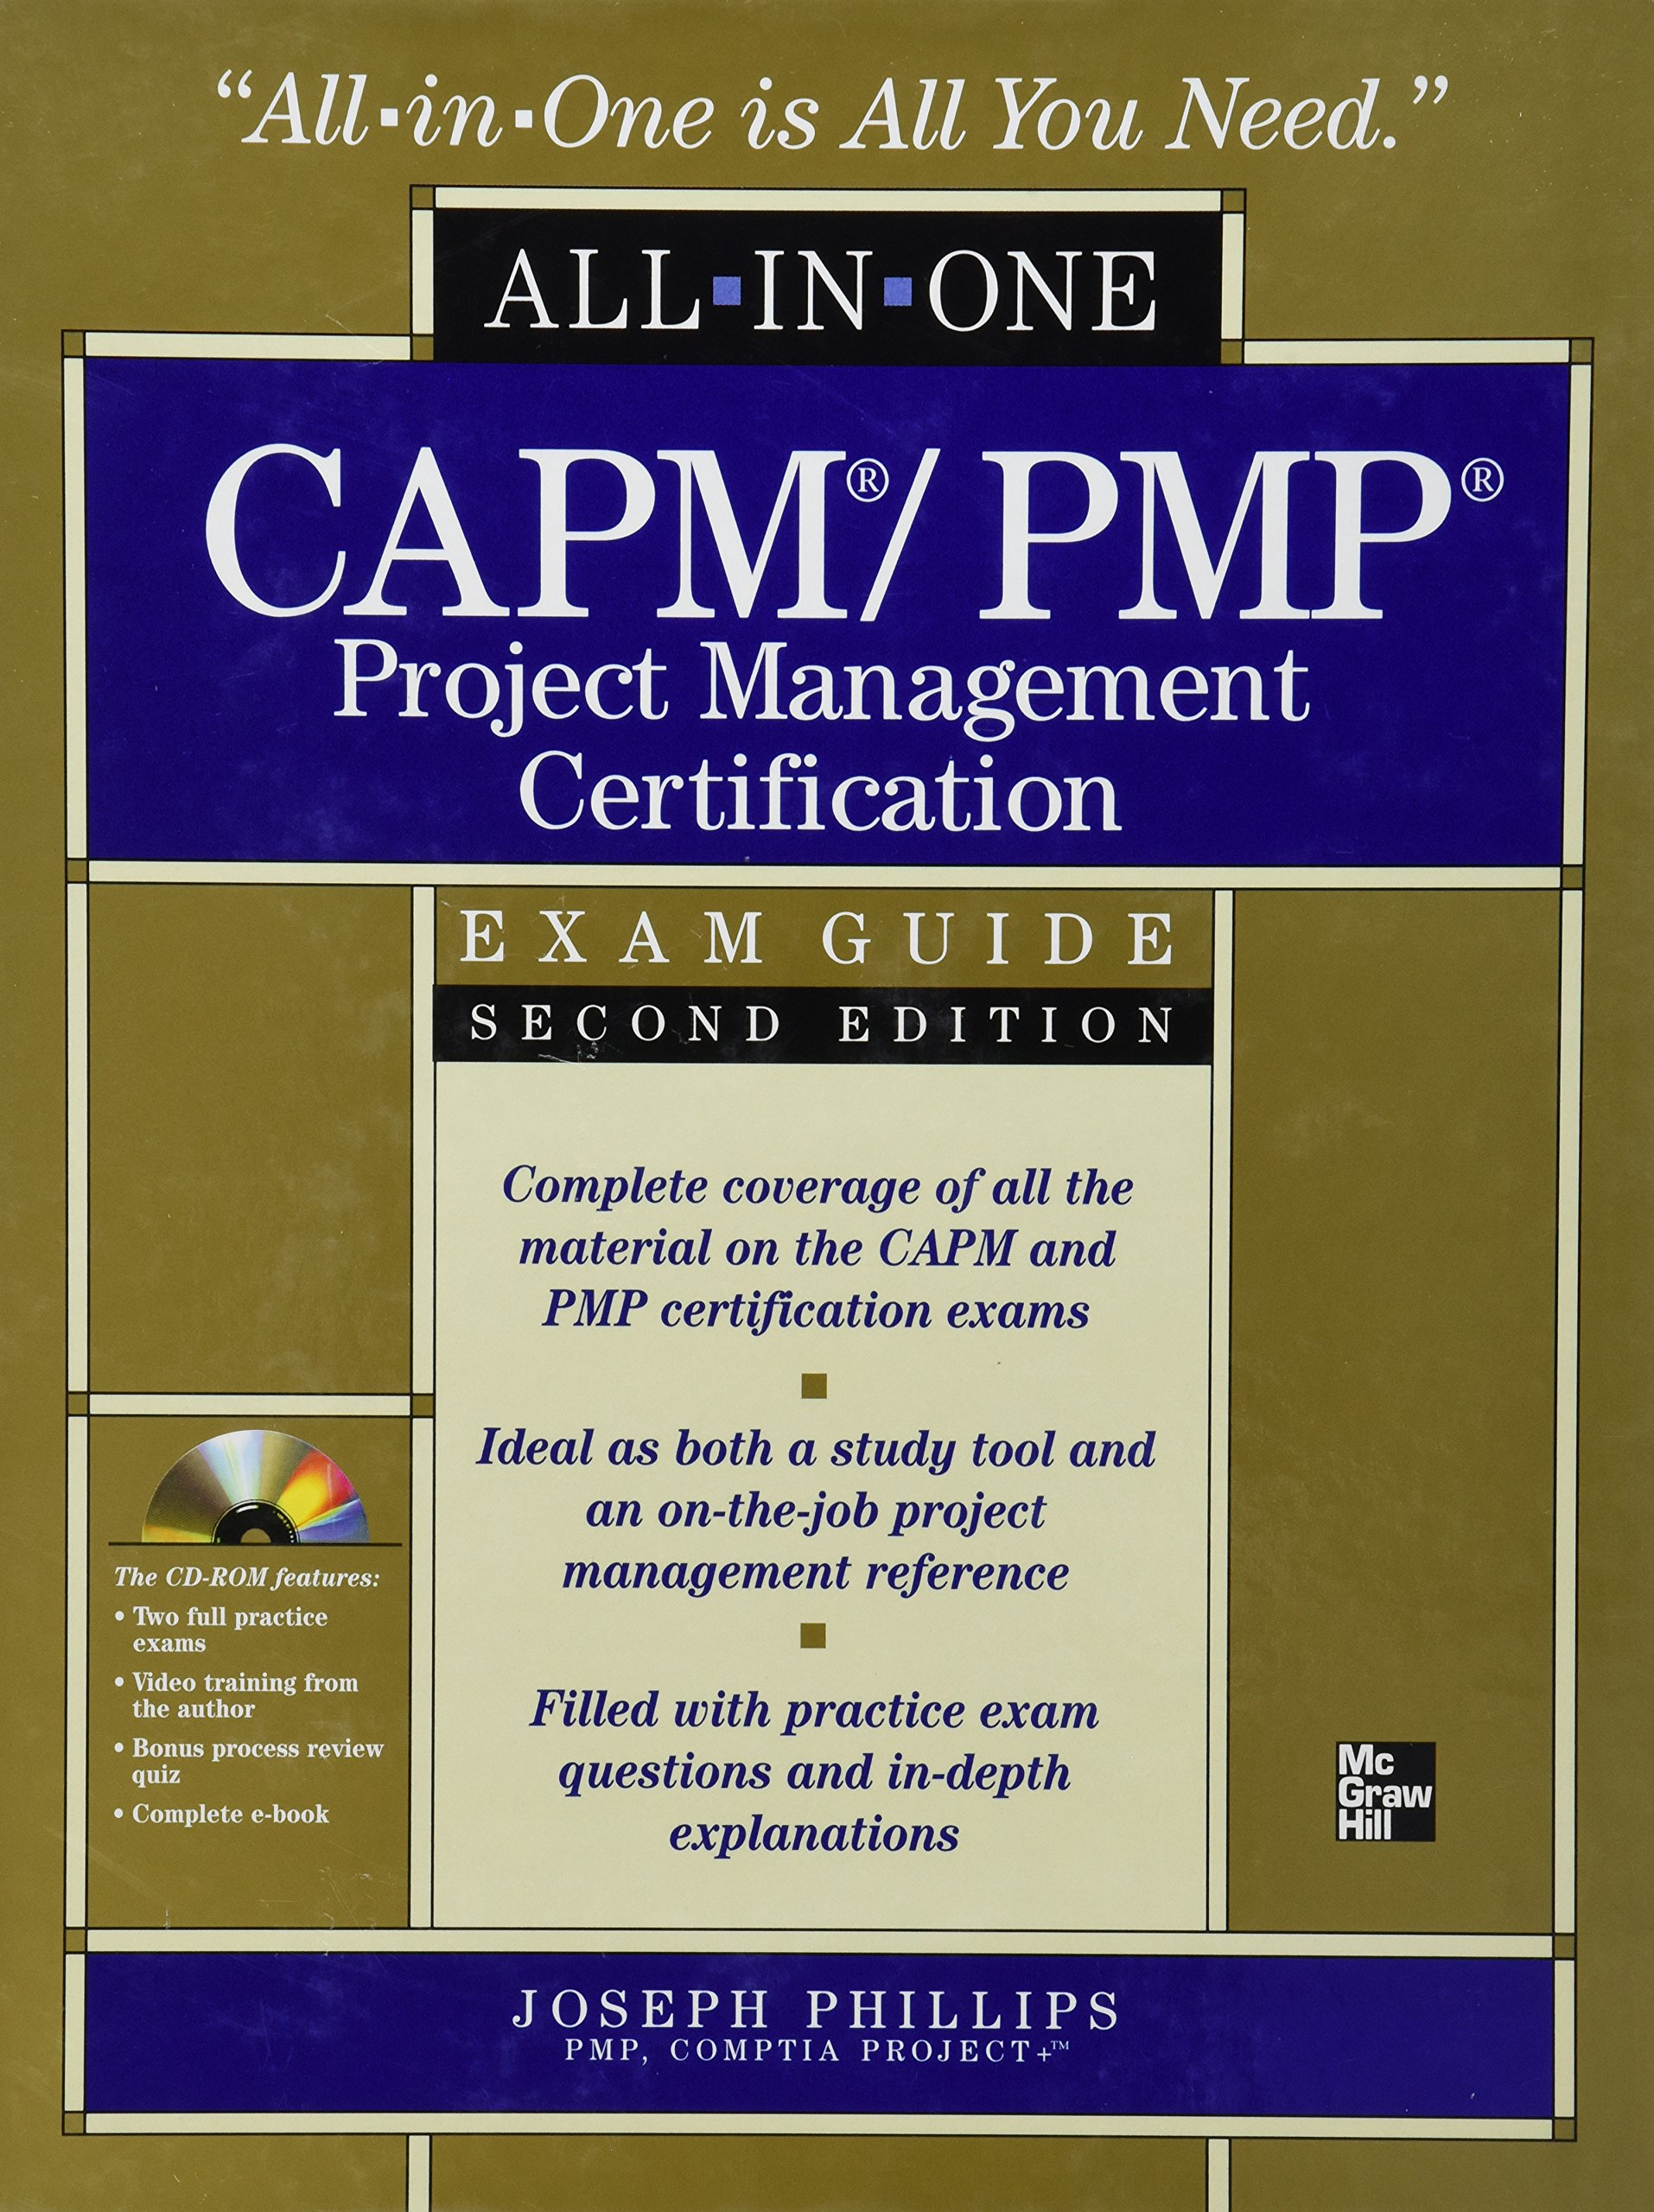 Buy capmpmp project management certification all in one exam buy capmpmp project management certification all in one exam guide with cd rom second edition book online at low prices in india capmpmp project 1betcityfo Gallery